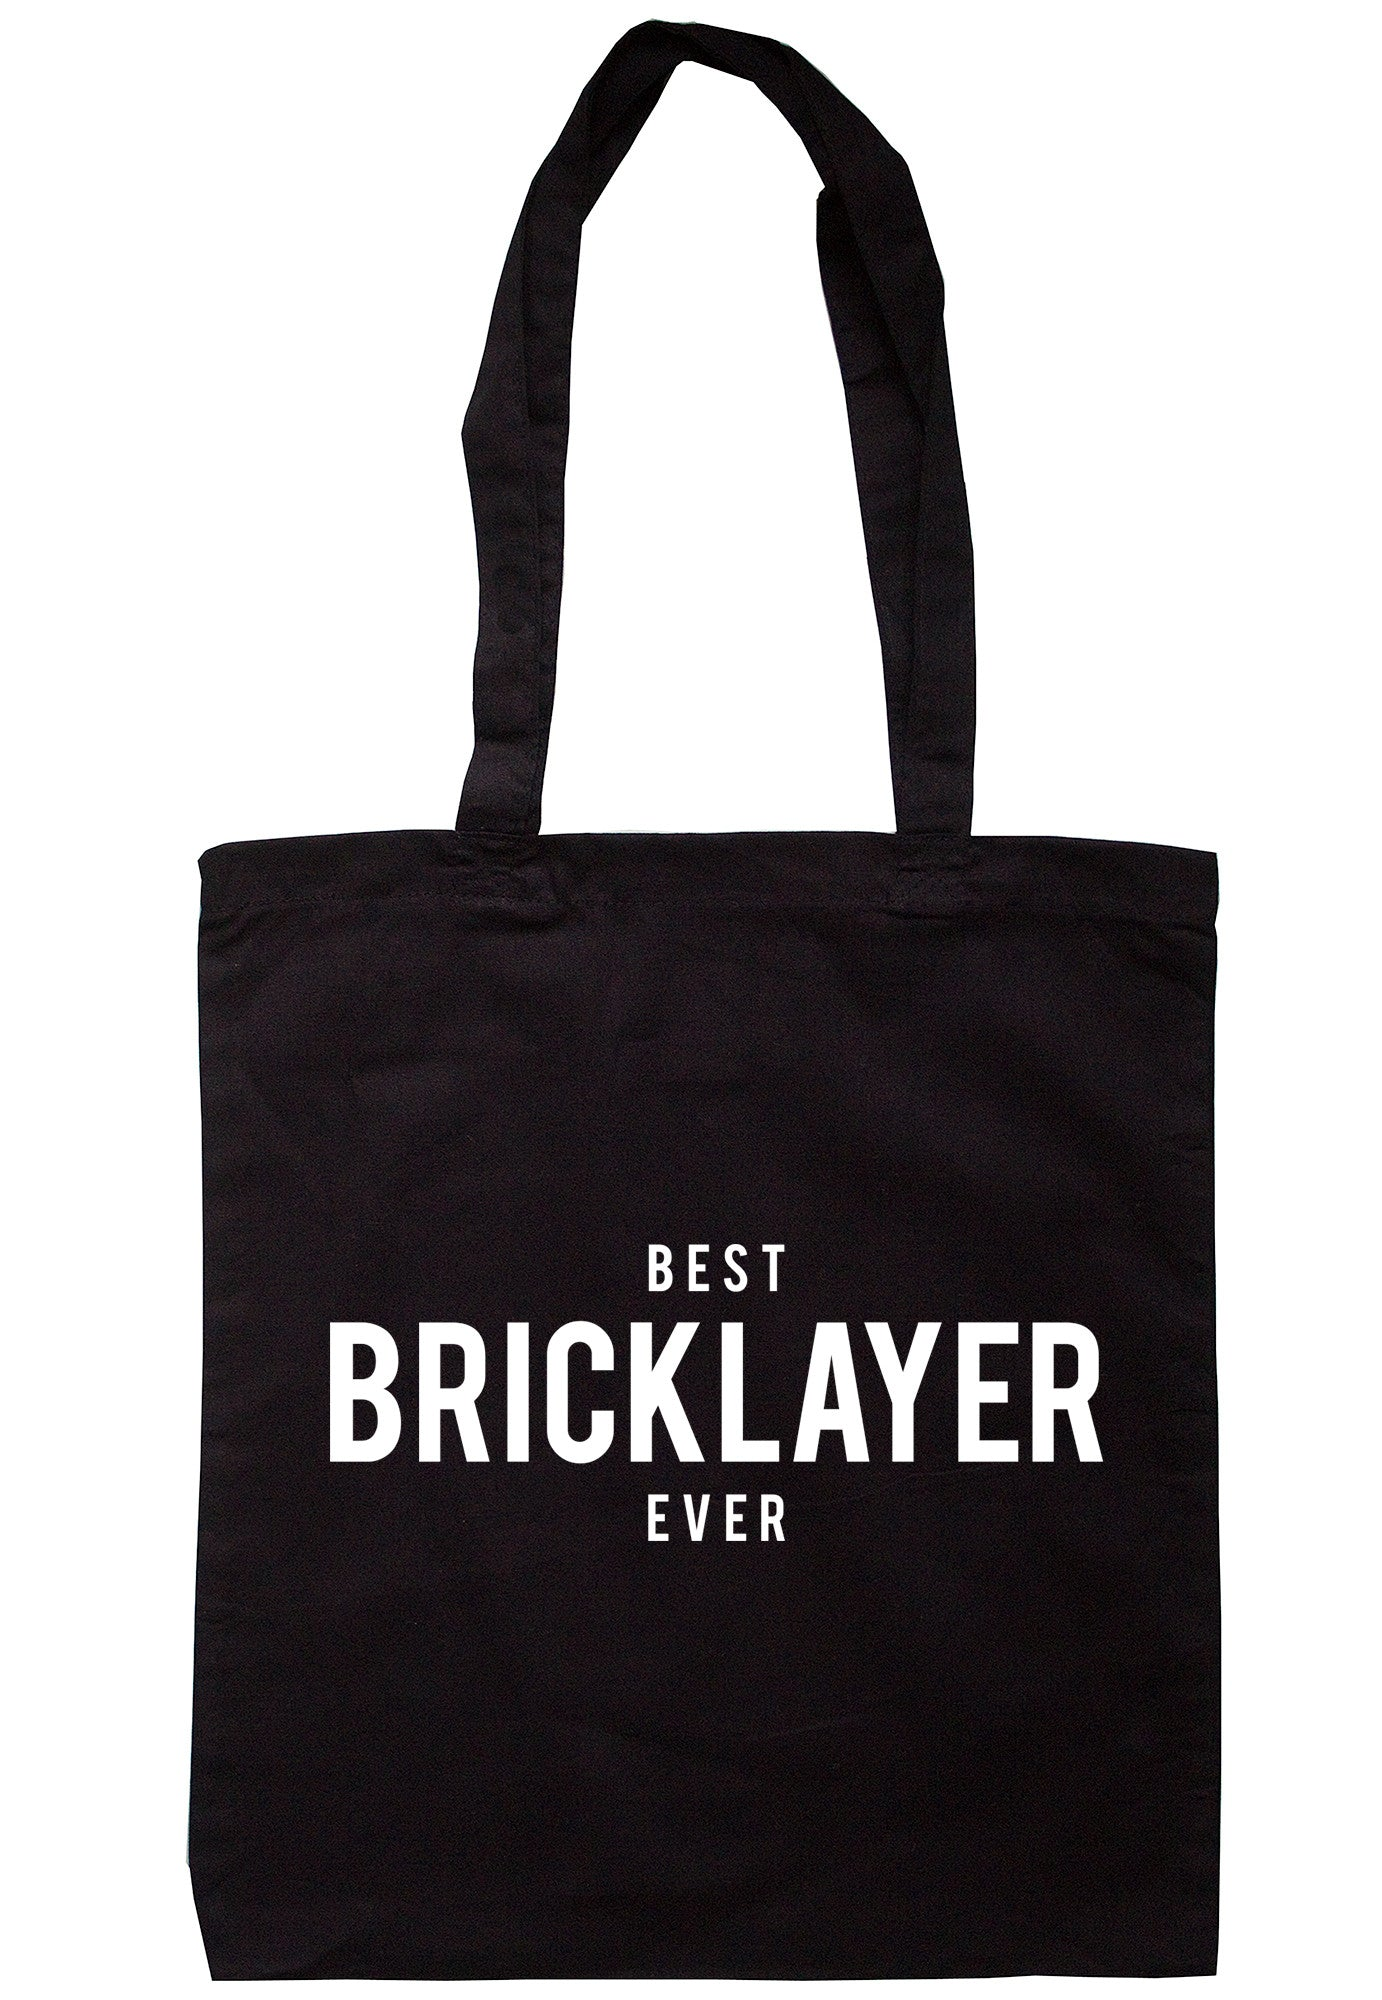 Best Bricklayer Ever Tote Bag TB1306